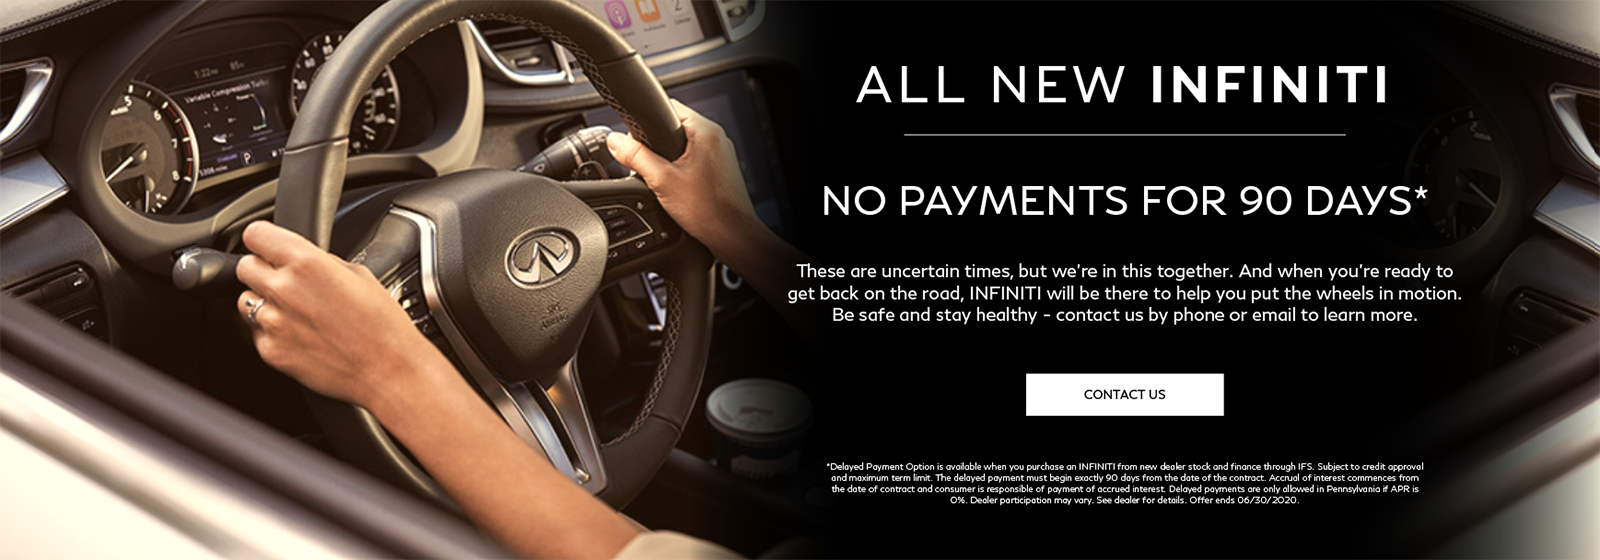 Putting you back on the road with no payments for 90 days. Contact us to learn more.